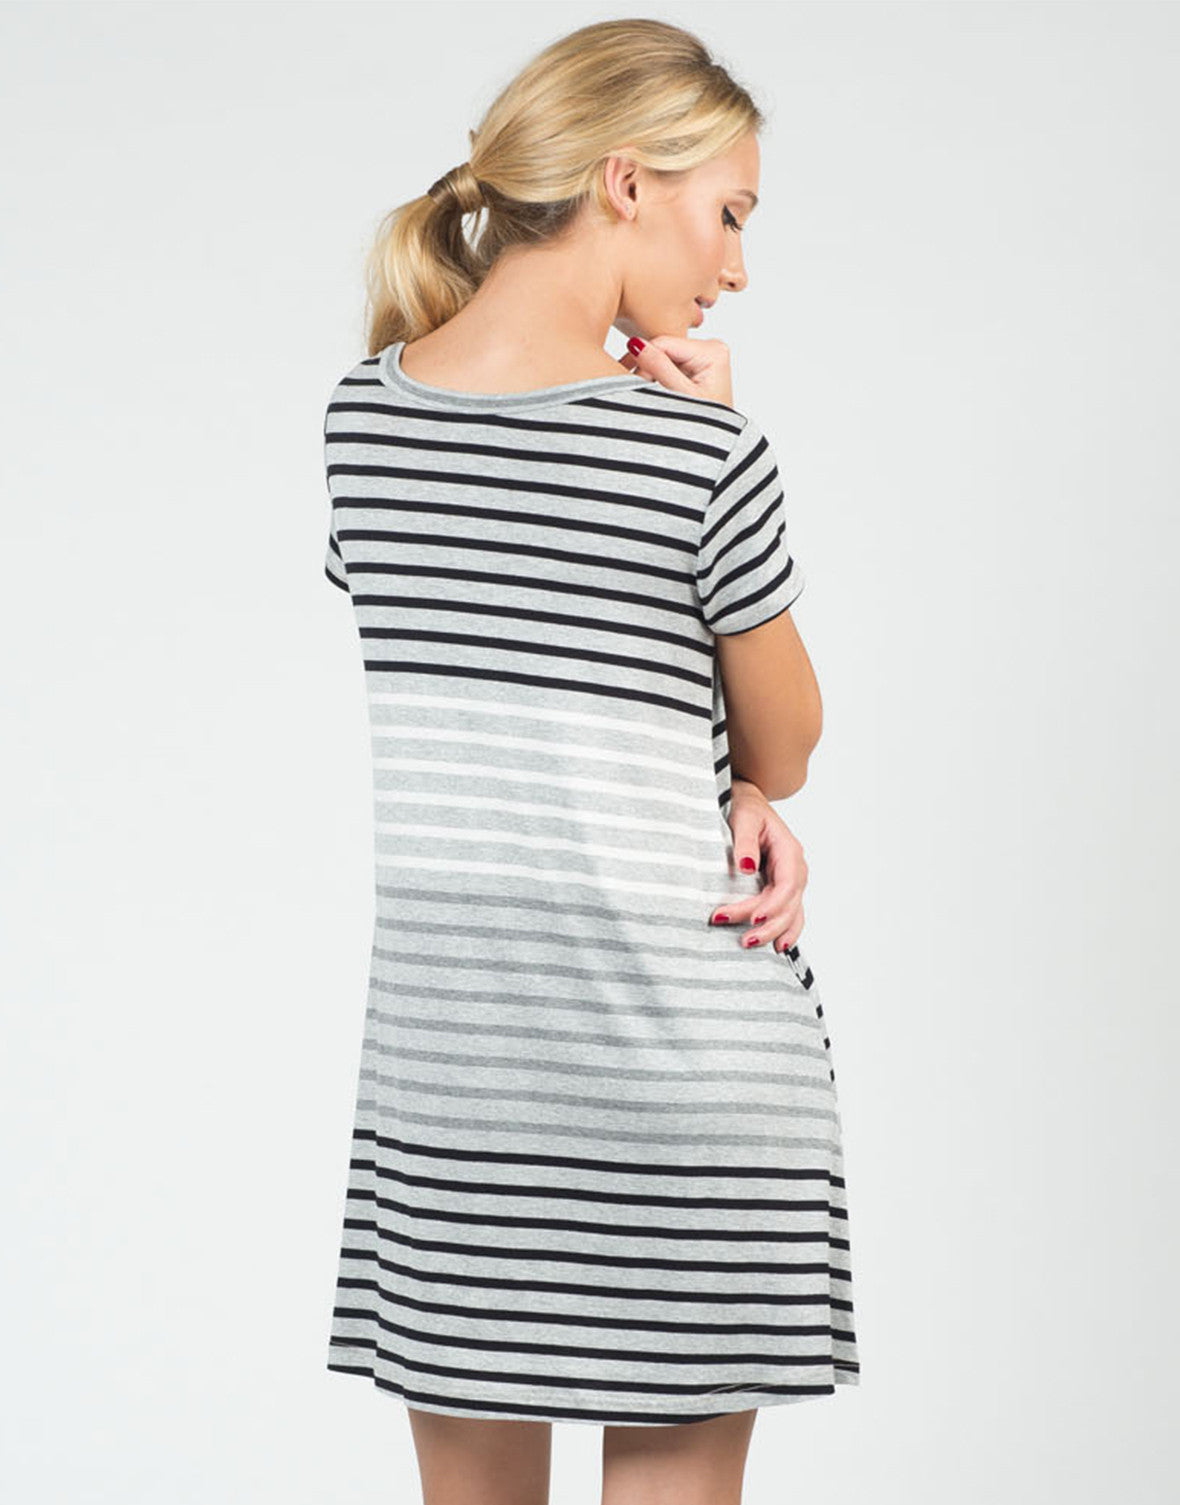 Back View of Color Contrast Striped Dress